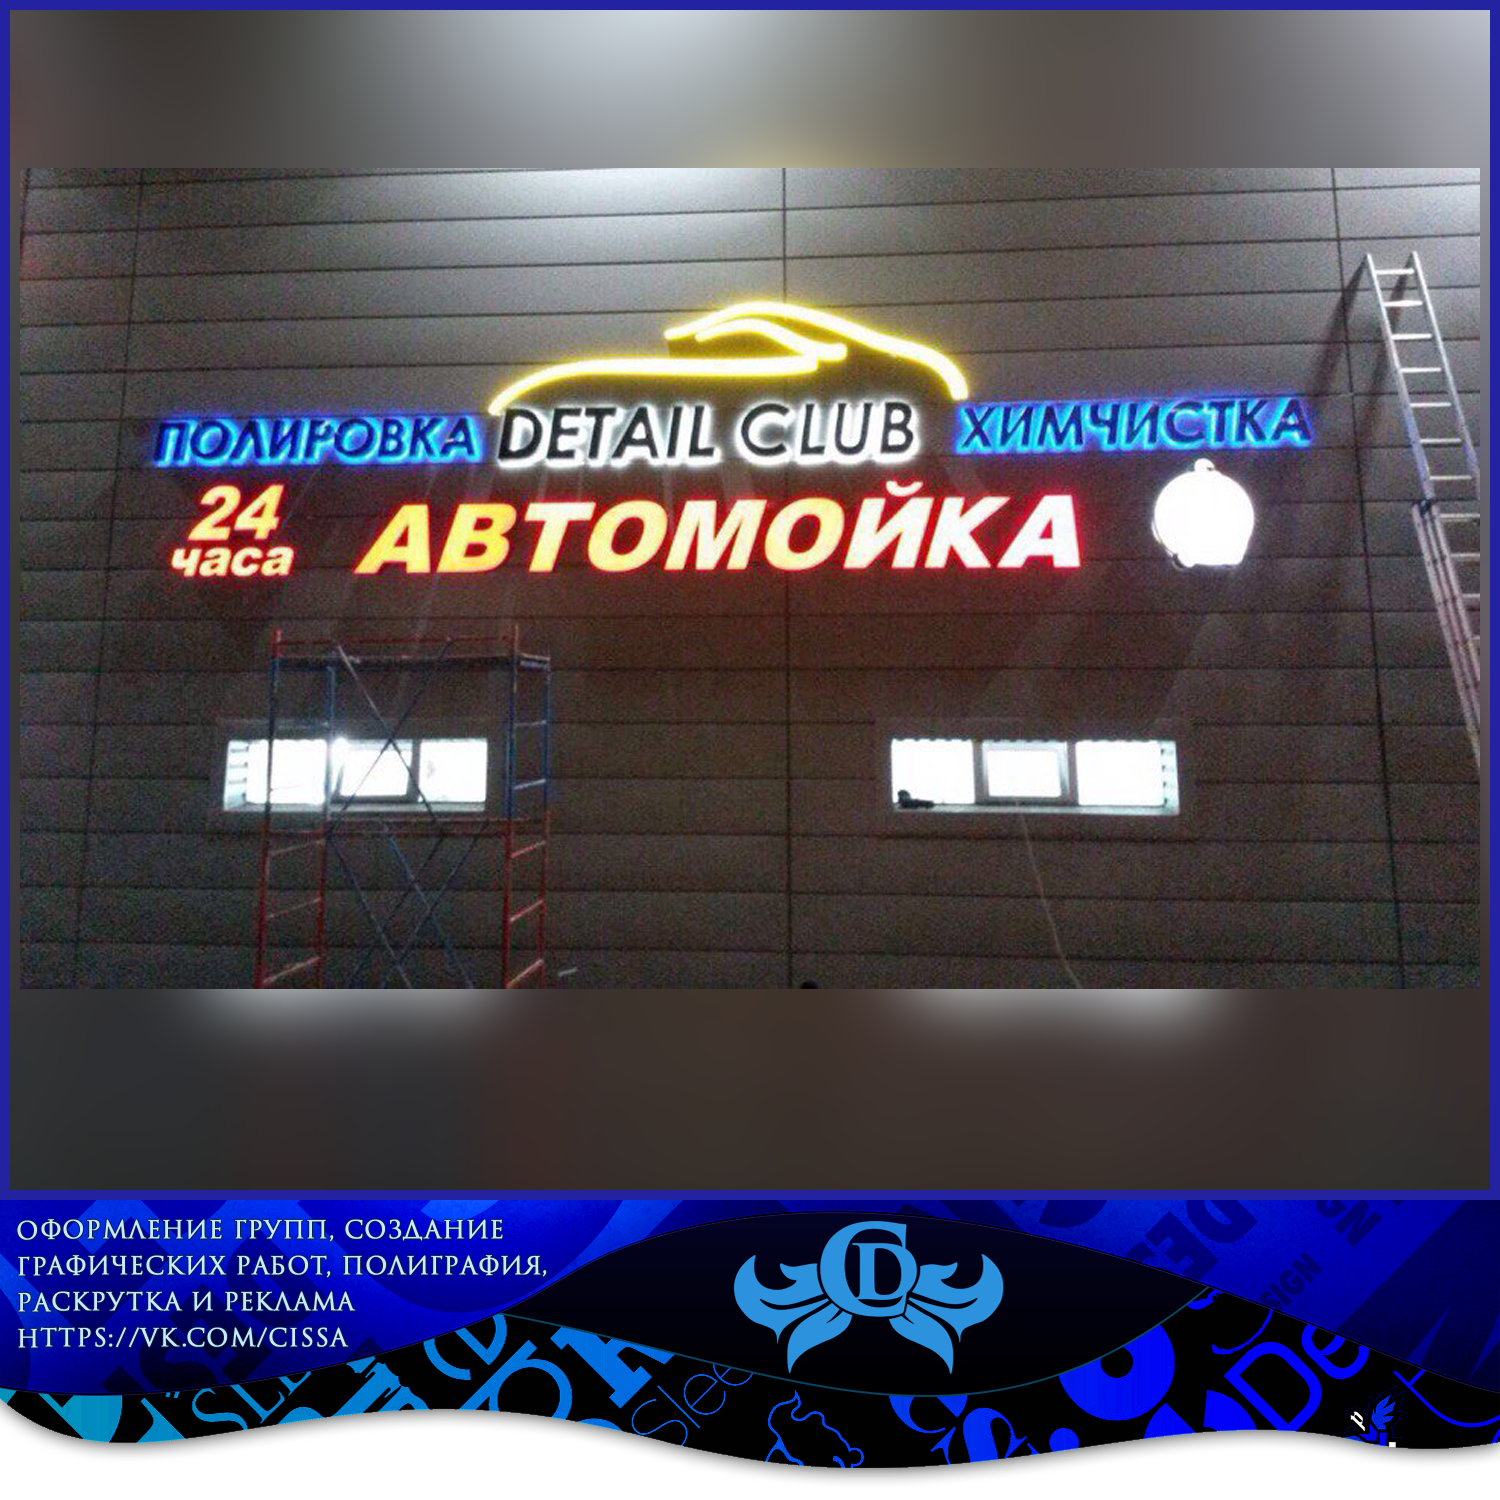 http://images.vfl.ru/ii/1516082748/a21a29e7/20168685.png